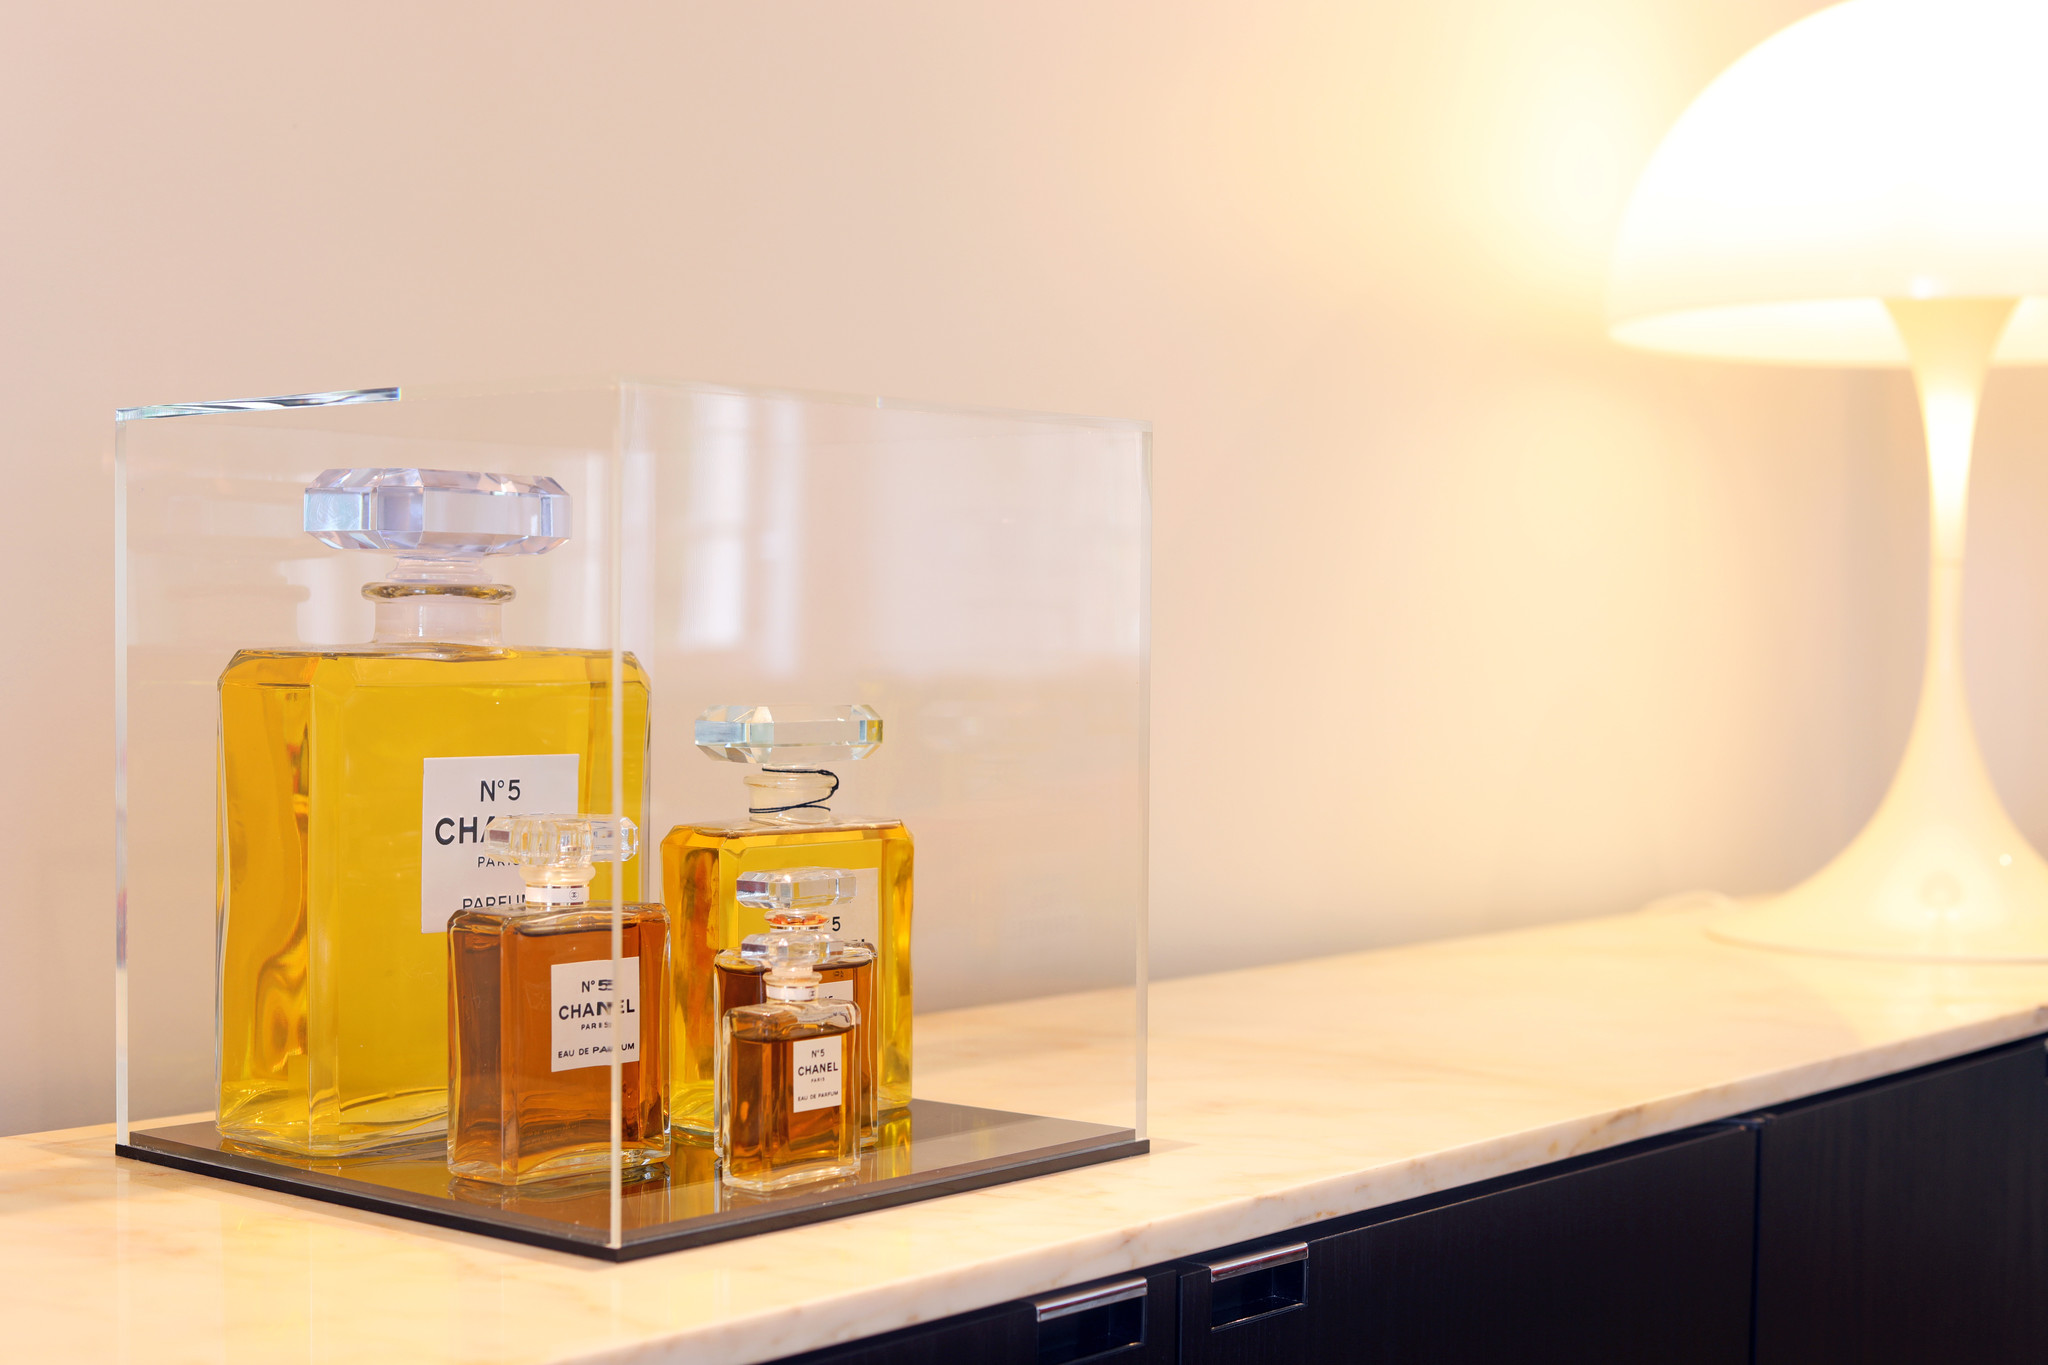 CHANEL N°5 COLLECTION OF BOTTLES IN SHOWCASE